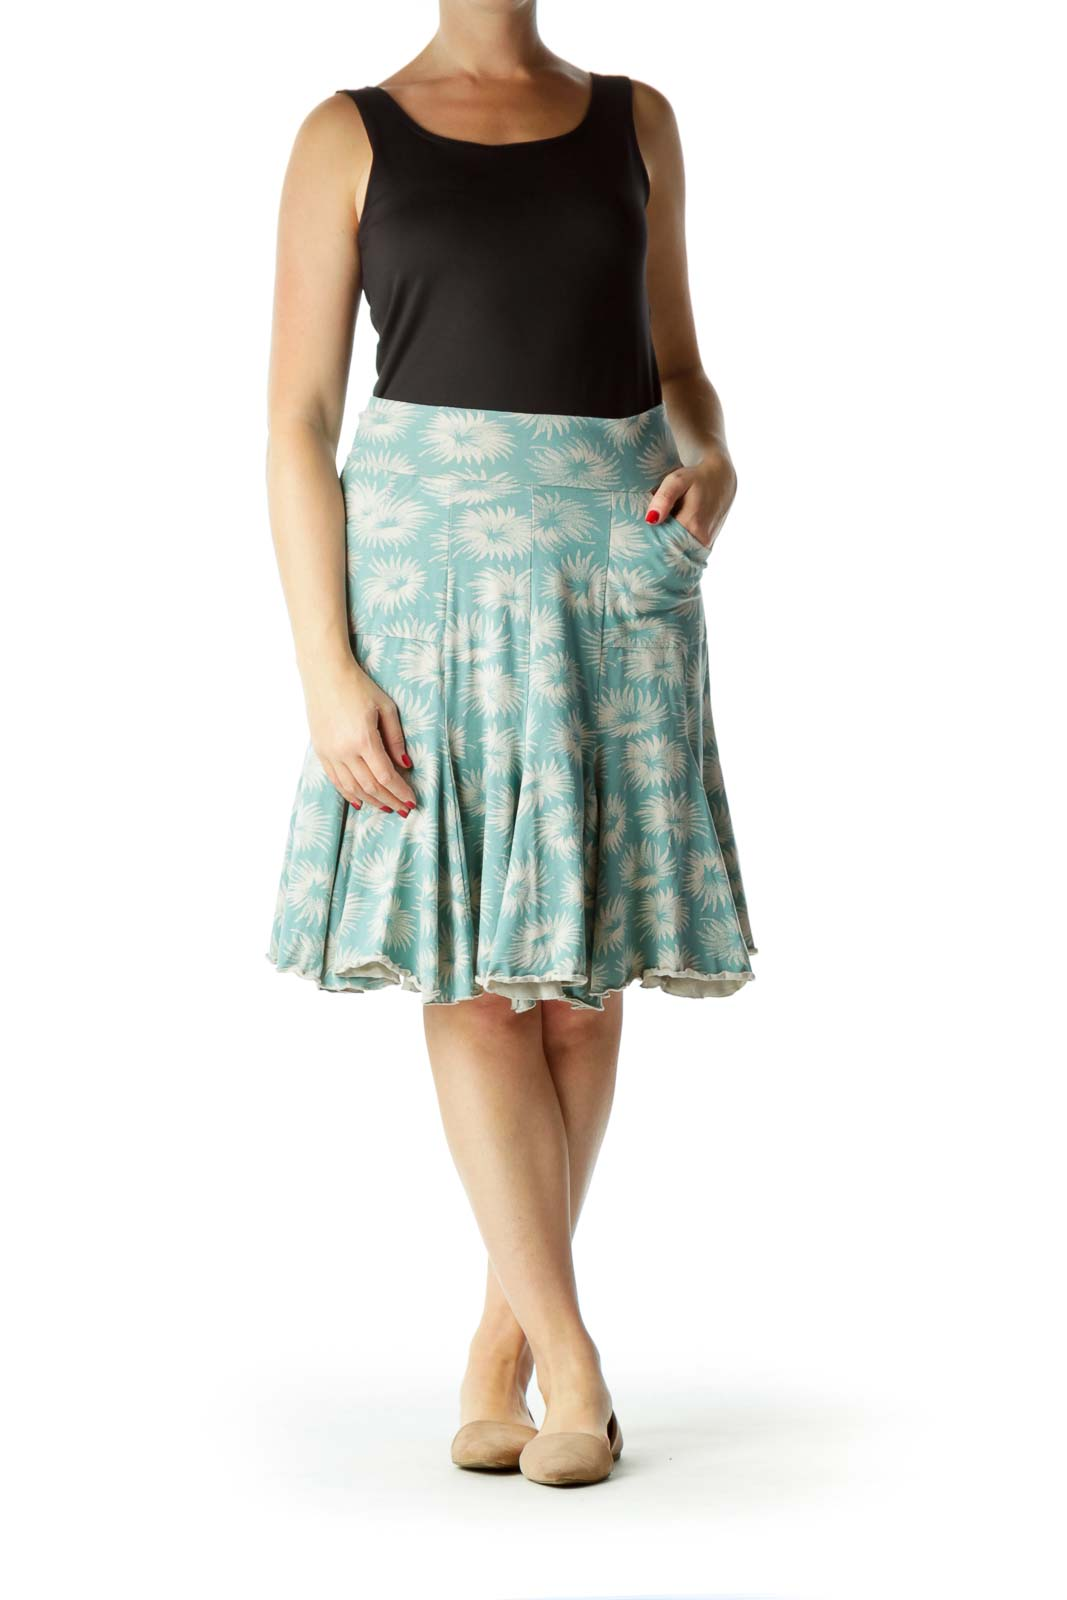 Blue Beige Printed A-Line Stretchy Skirt